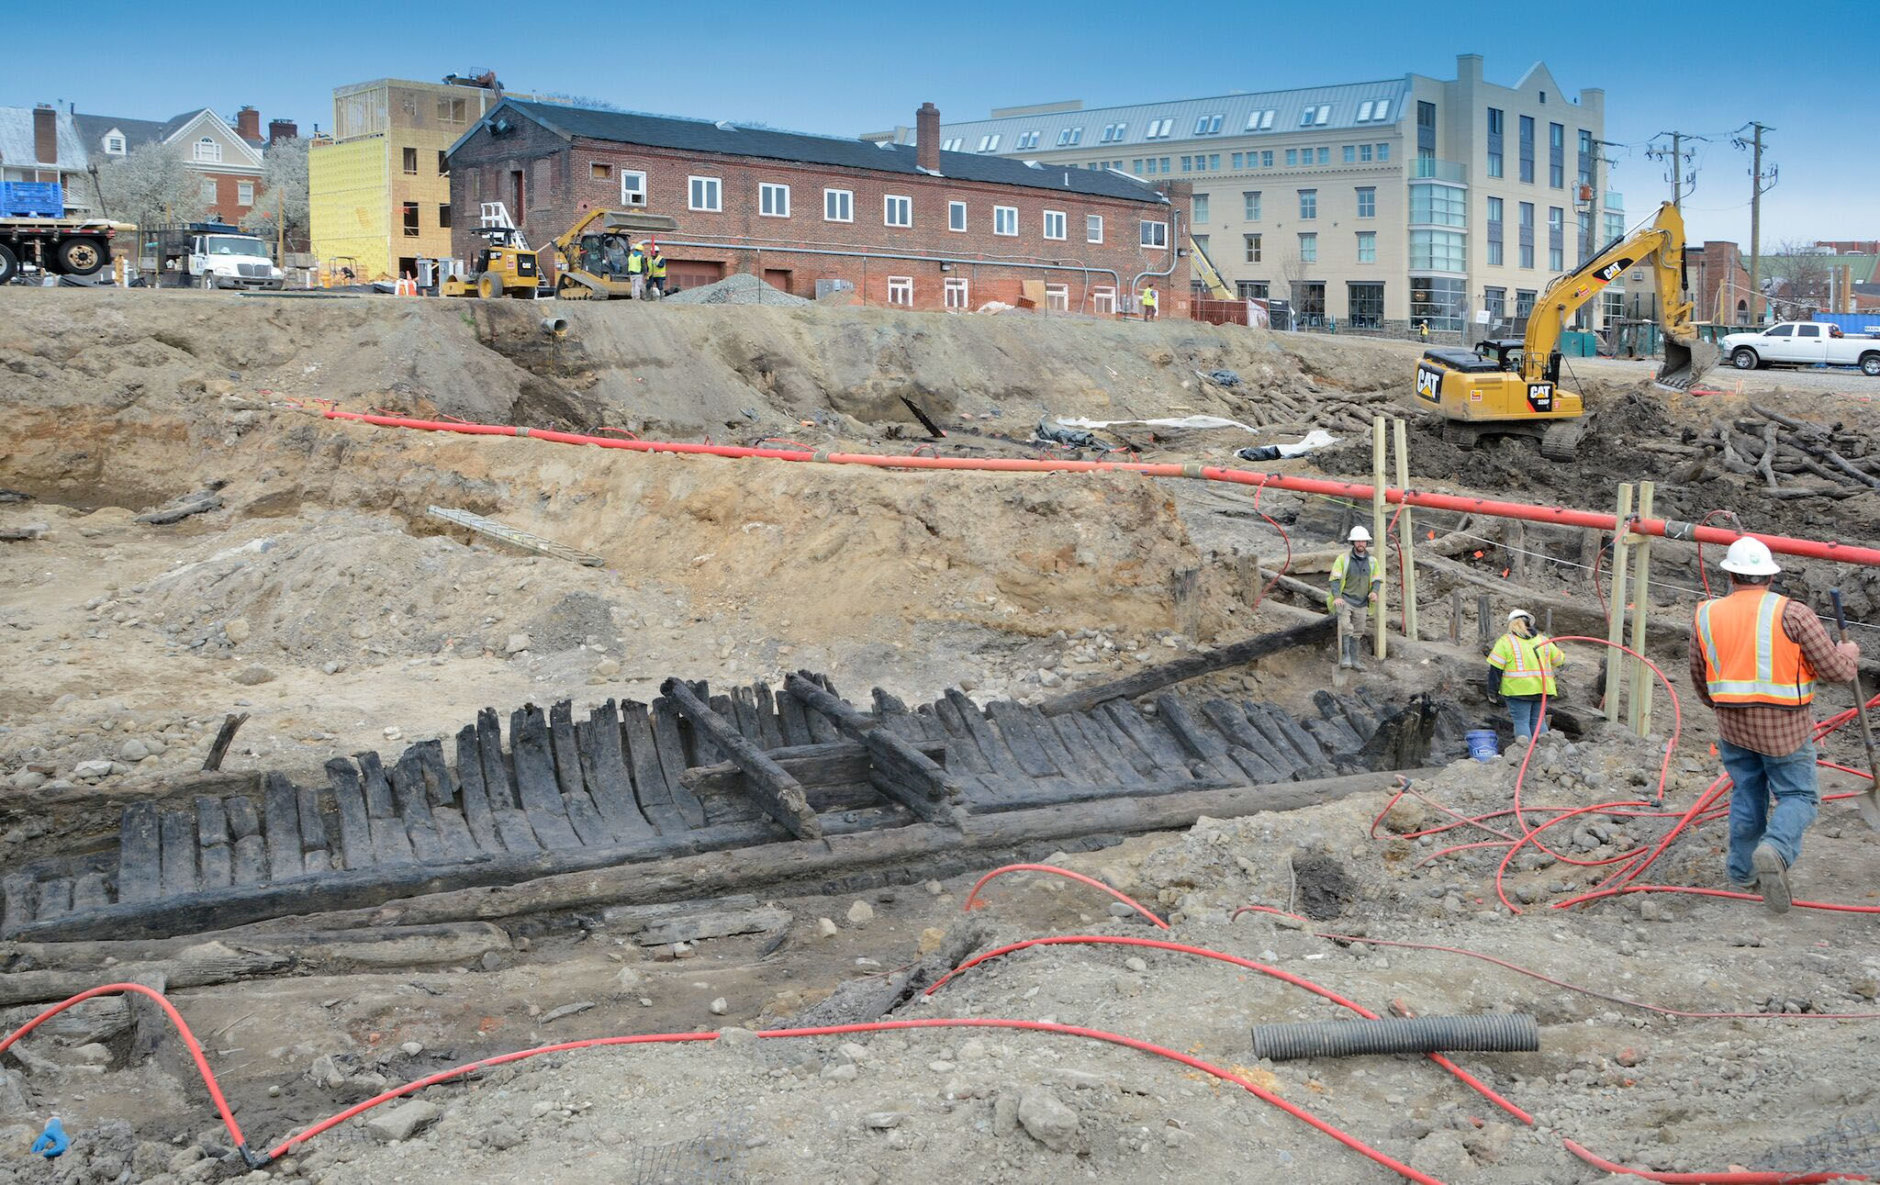 The remains of a third historic ship were discovered at the Robinson Landing construction site in Alexandria's Old Town on March 29, 2018. (Courtesy EYA, LLC)